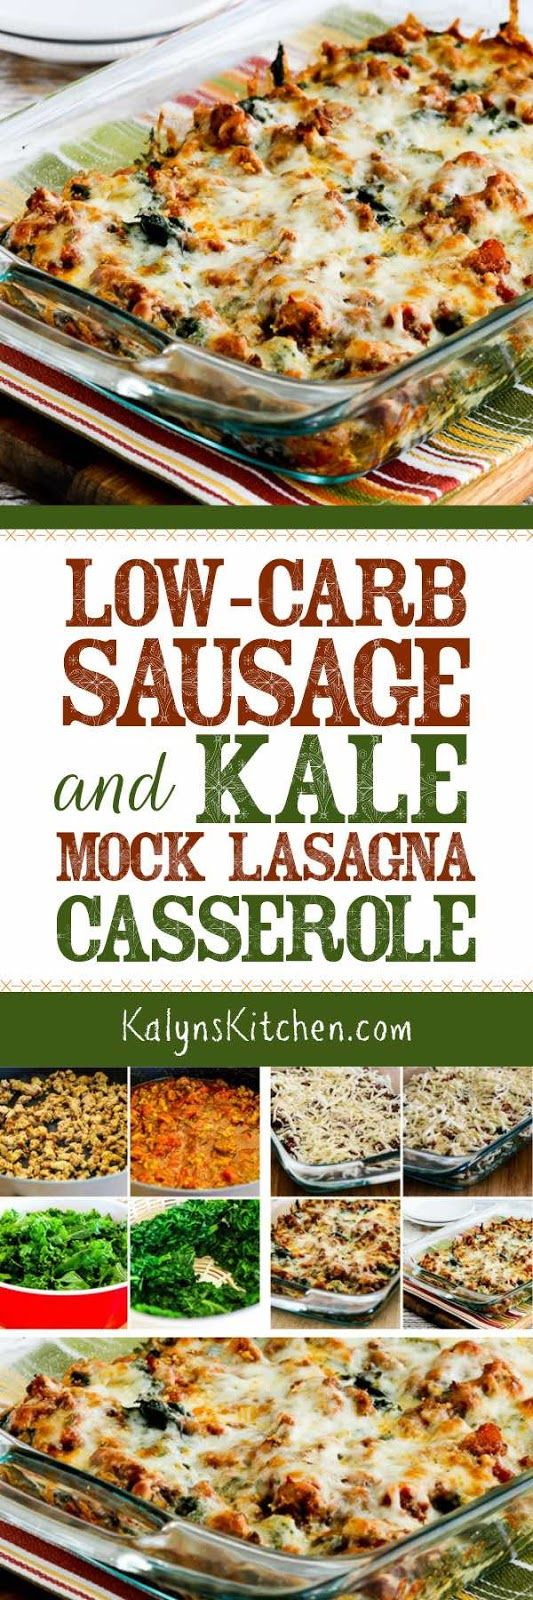 If you're seriously in need of some low-carb comfort food, you'll love this Low-Carb Sausage and Kale Mock Lasagna Casserole! This is so good you definitely won't miss the noodles, and this tasty mock lasagna casserole is also low-glycemic, gluten-free, and South Beach Diet Phase One.  [found on KalynsKitchen.com]